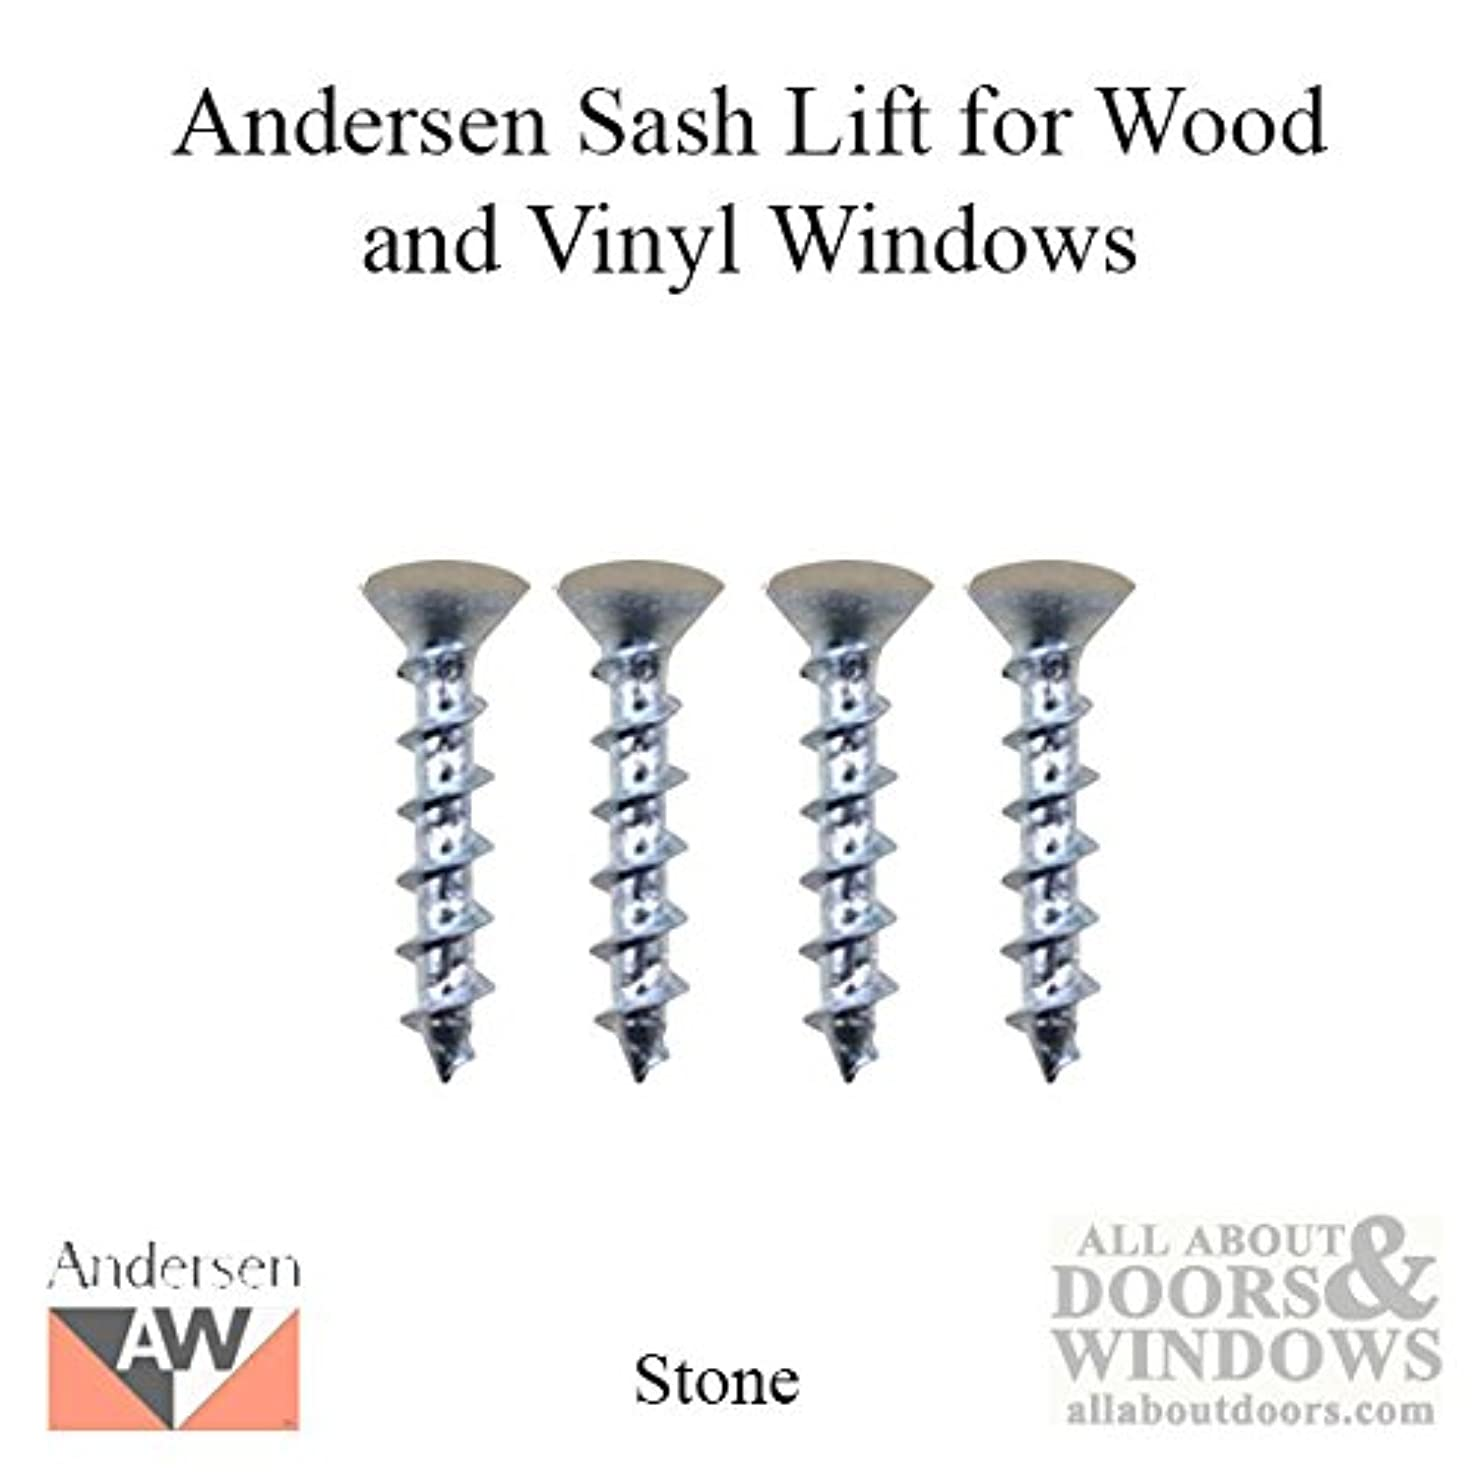 Andersen 4 Screw Pack for Sash Lock & Keeper - 400 Series Woodwright Double Hung Window - Stone